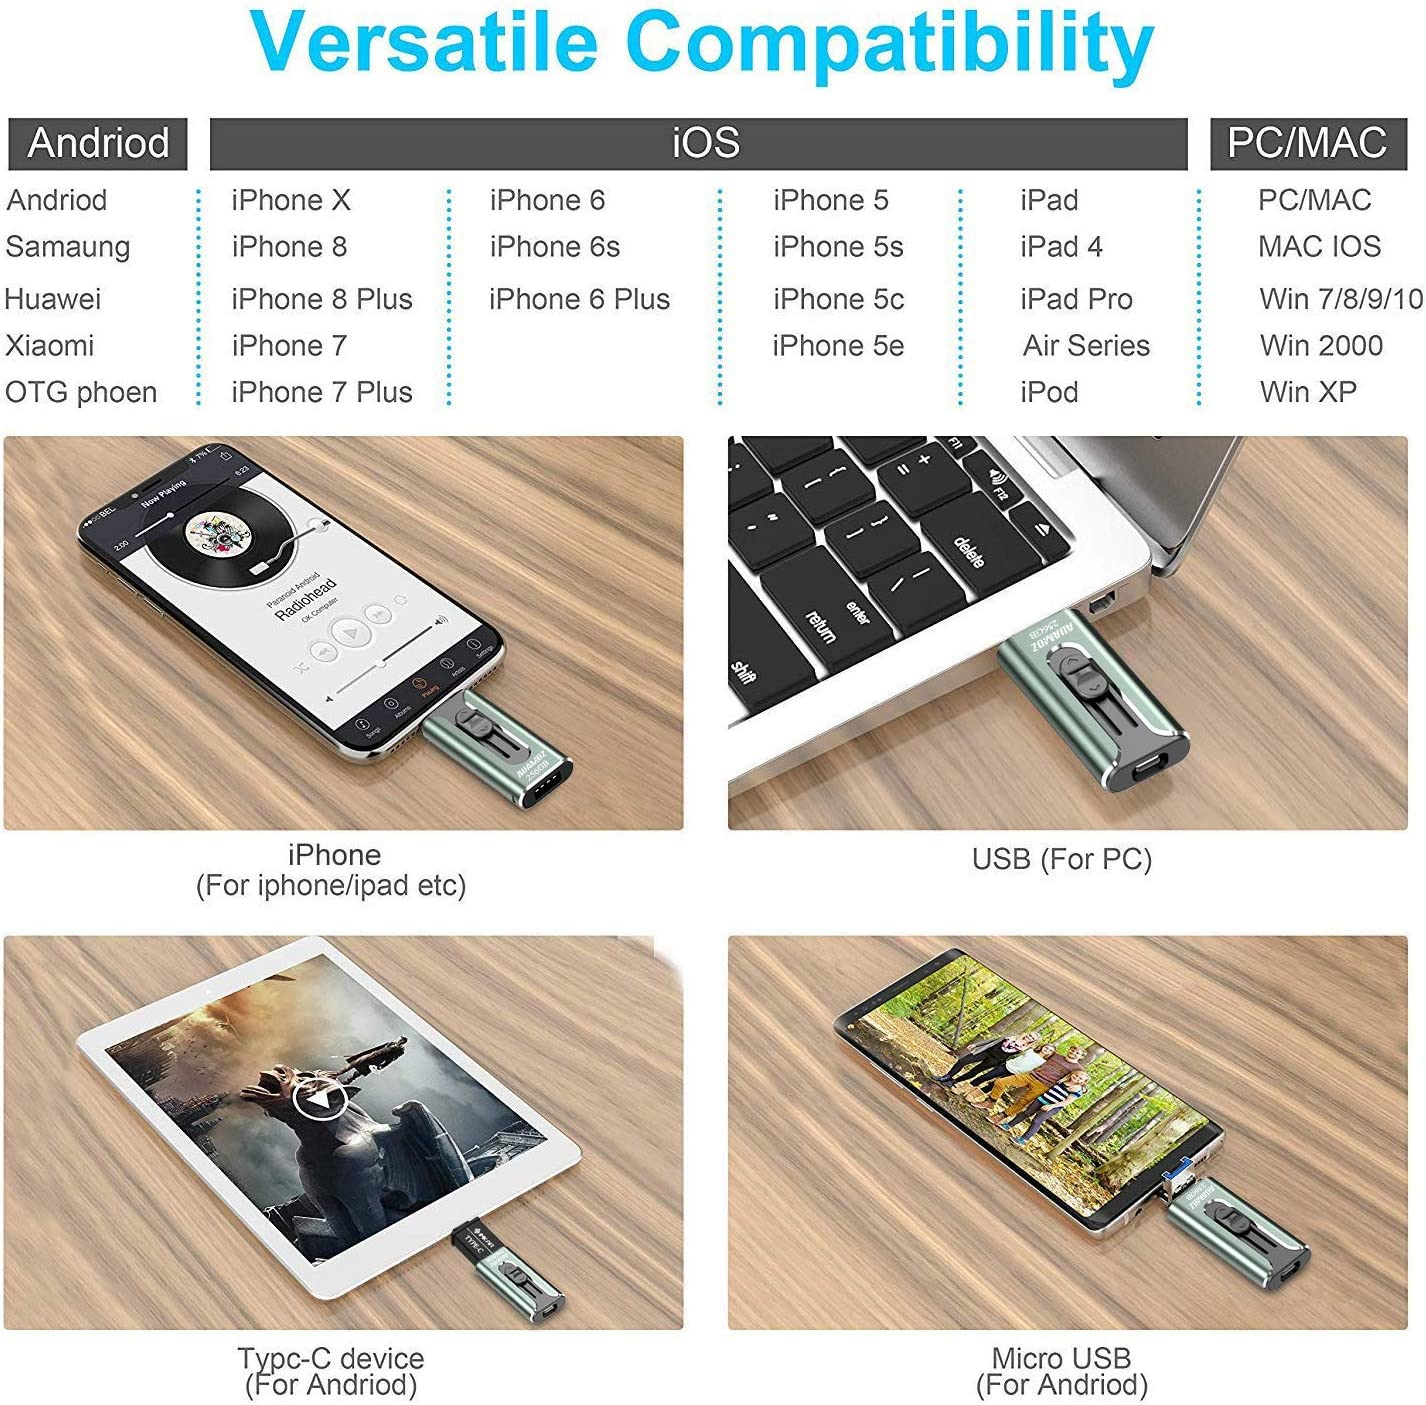 AUAMOZ iPhone USB 3.0 Memory Photo Stick for iPhone 11 Pro X XR XS MAX Dark Green iPhone Flash Drive with 4 Ports Ready for iPhone//iPad//Android//Computer iPhone Flash Drive 128GB iPhone Photo Stick